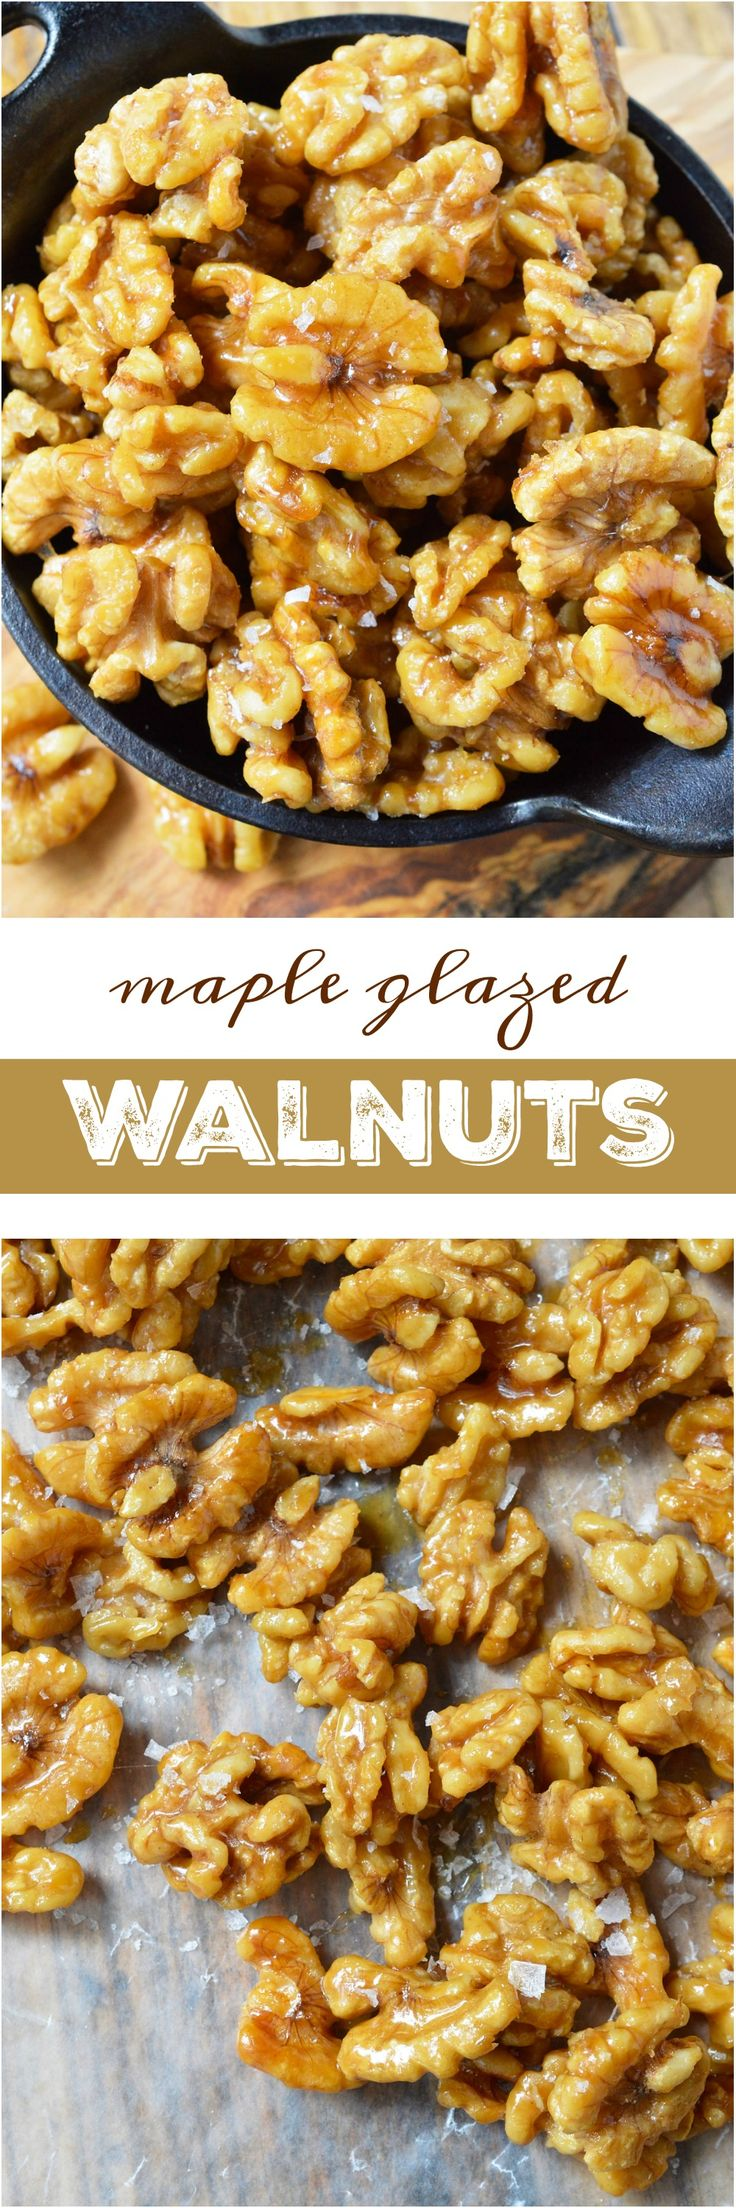 This Easy Maple Glazed Walnuts Recipe requires just 2 ingredients and couldn't get much more simple! These walnuts are lightly sweetened the natural way with pure maple syrup. Just bake, cool and enjoy alone, on salads or in a healthy snack mix!